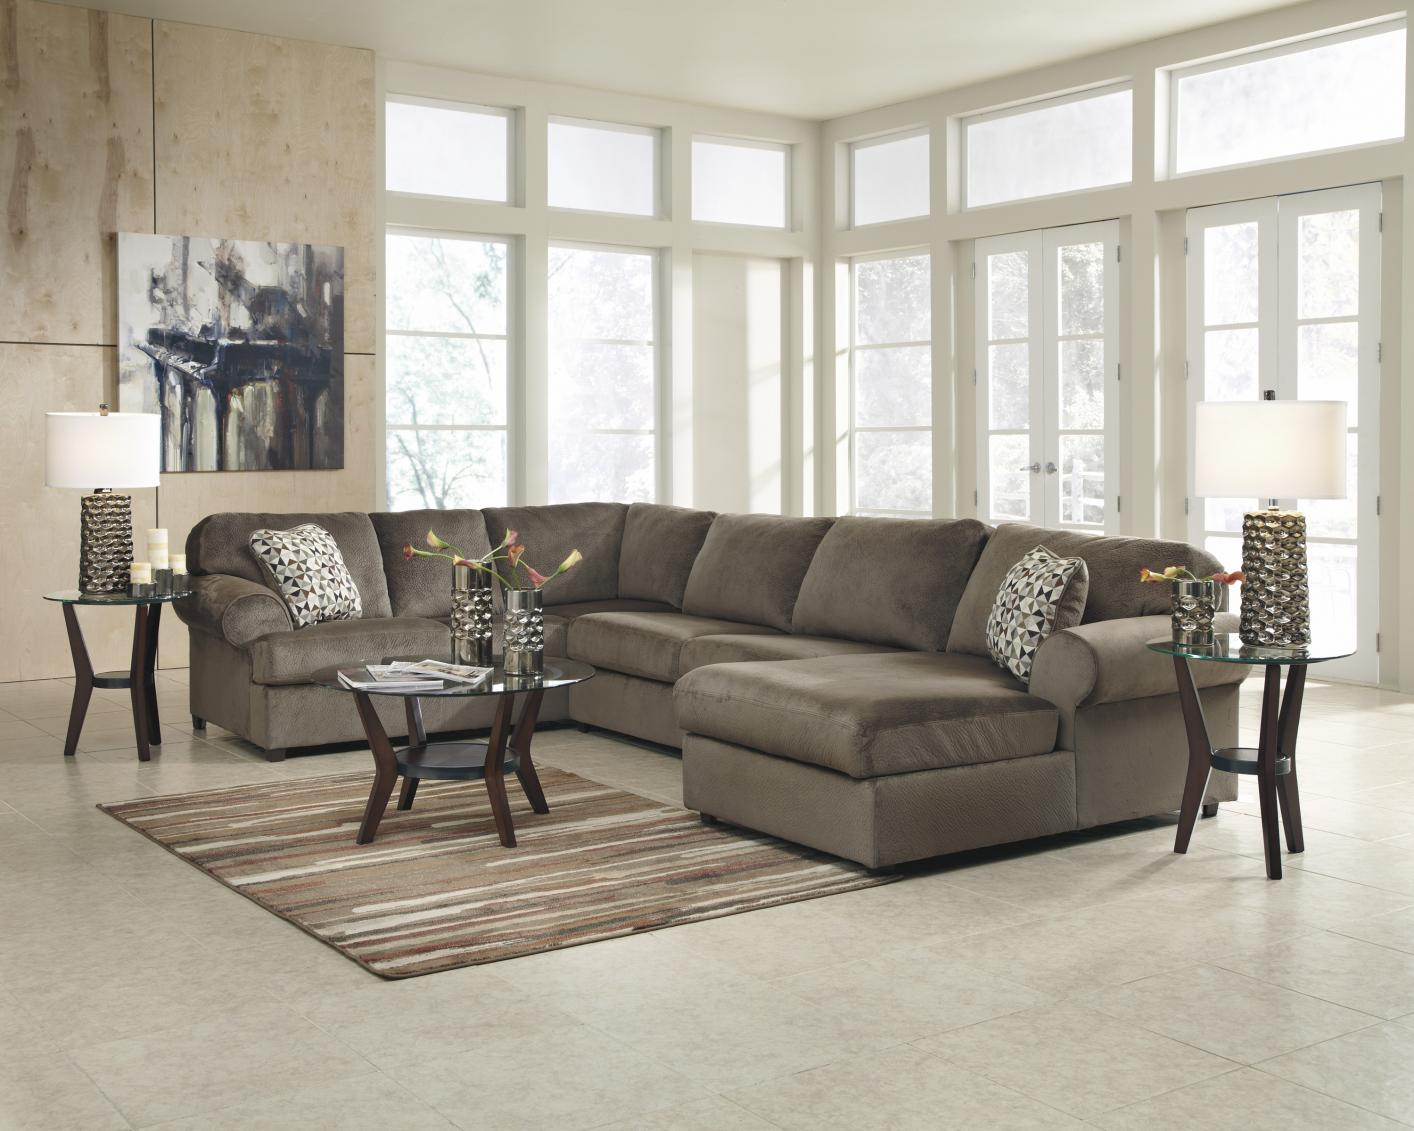 Beige Fabric Sectional Sofa – Steal A Sofa Furniture Regarding Los Angeles Sectional Sofas (View 4 of 15)